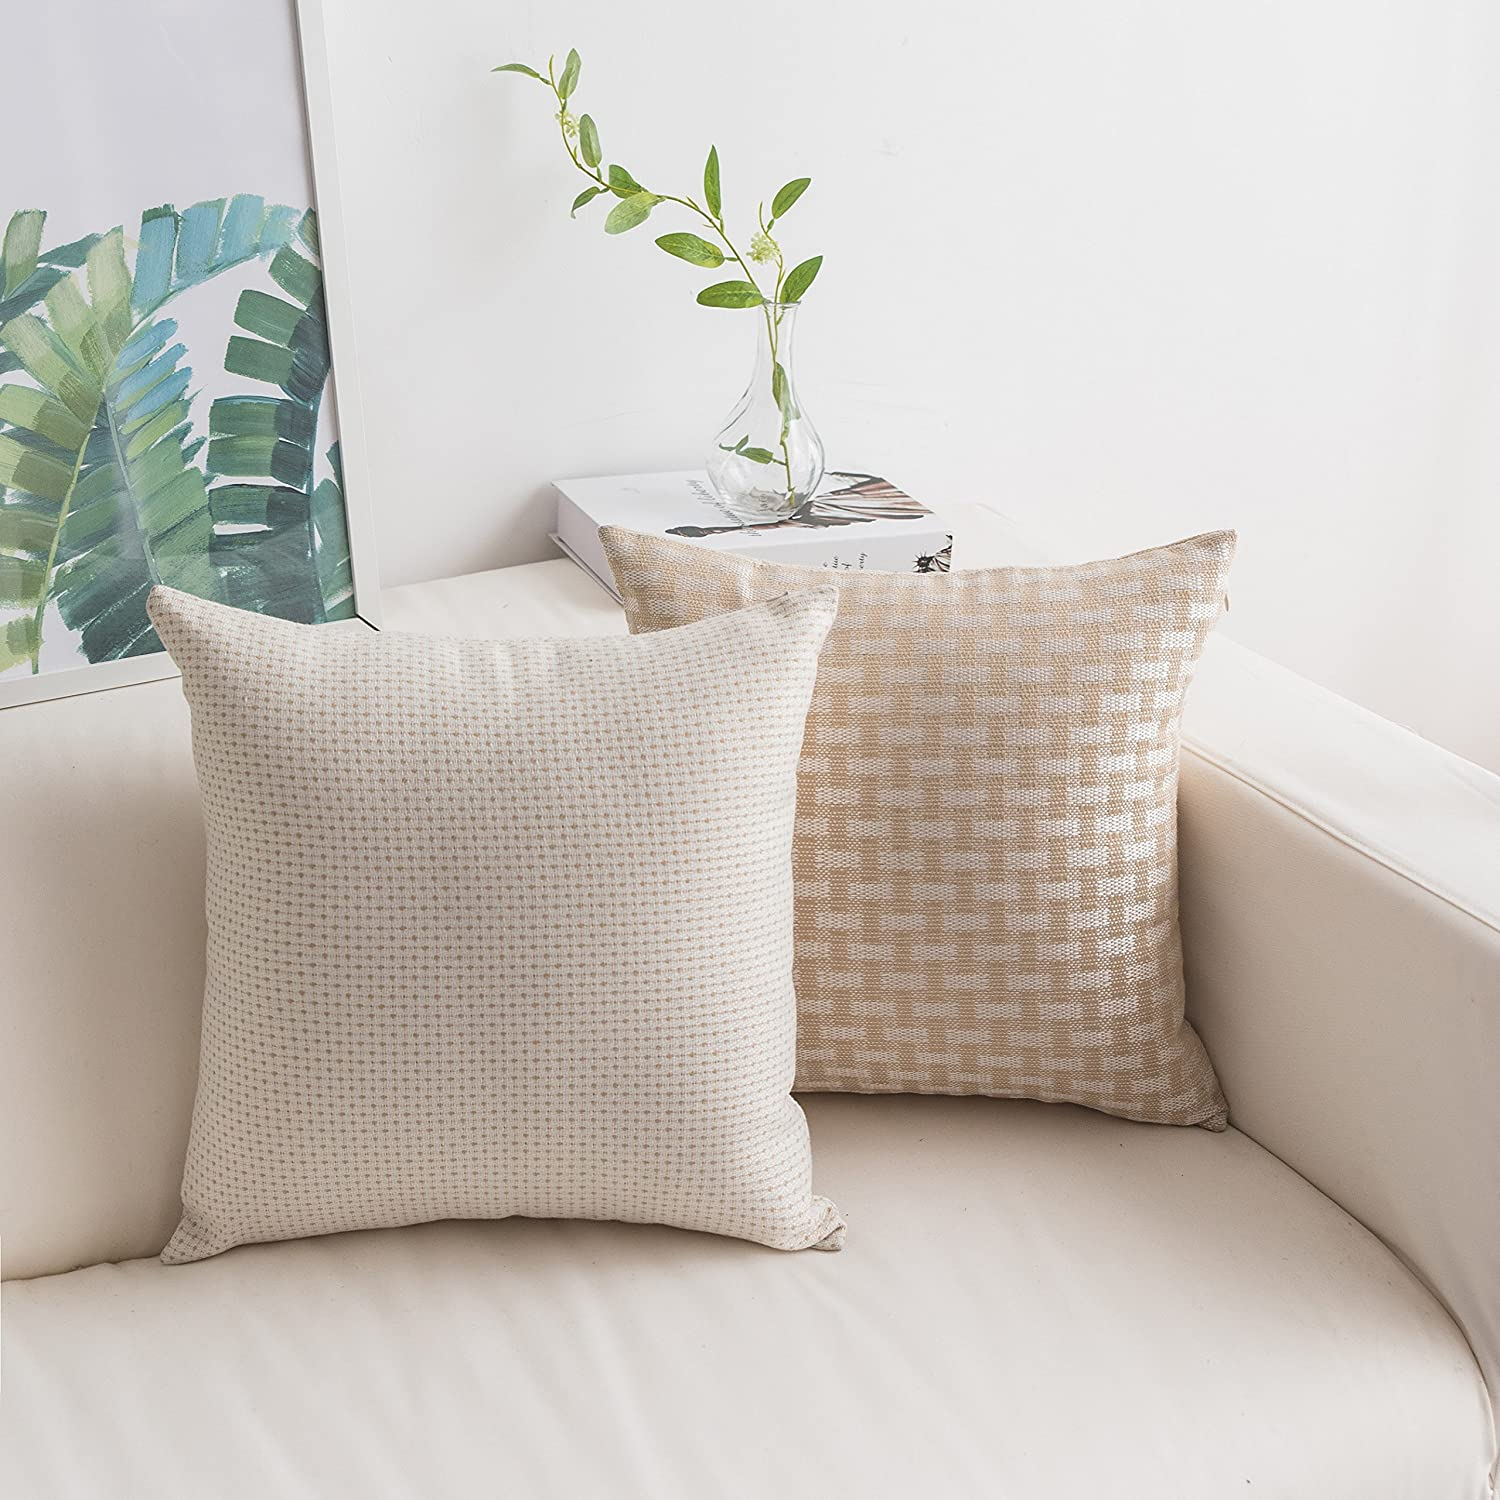 HOME BRILLIANT Pack of 2 Modern Farmhouse Checker Plaids Throw Pillow Covers Decorative Textured Square Accent Cushion Covers Set for Sofa, 18 x 18 inches(45cm), White Beige